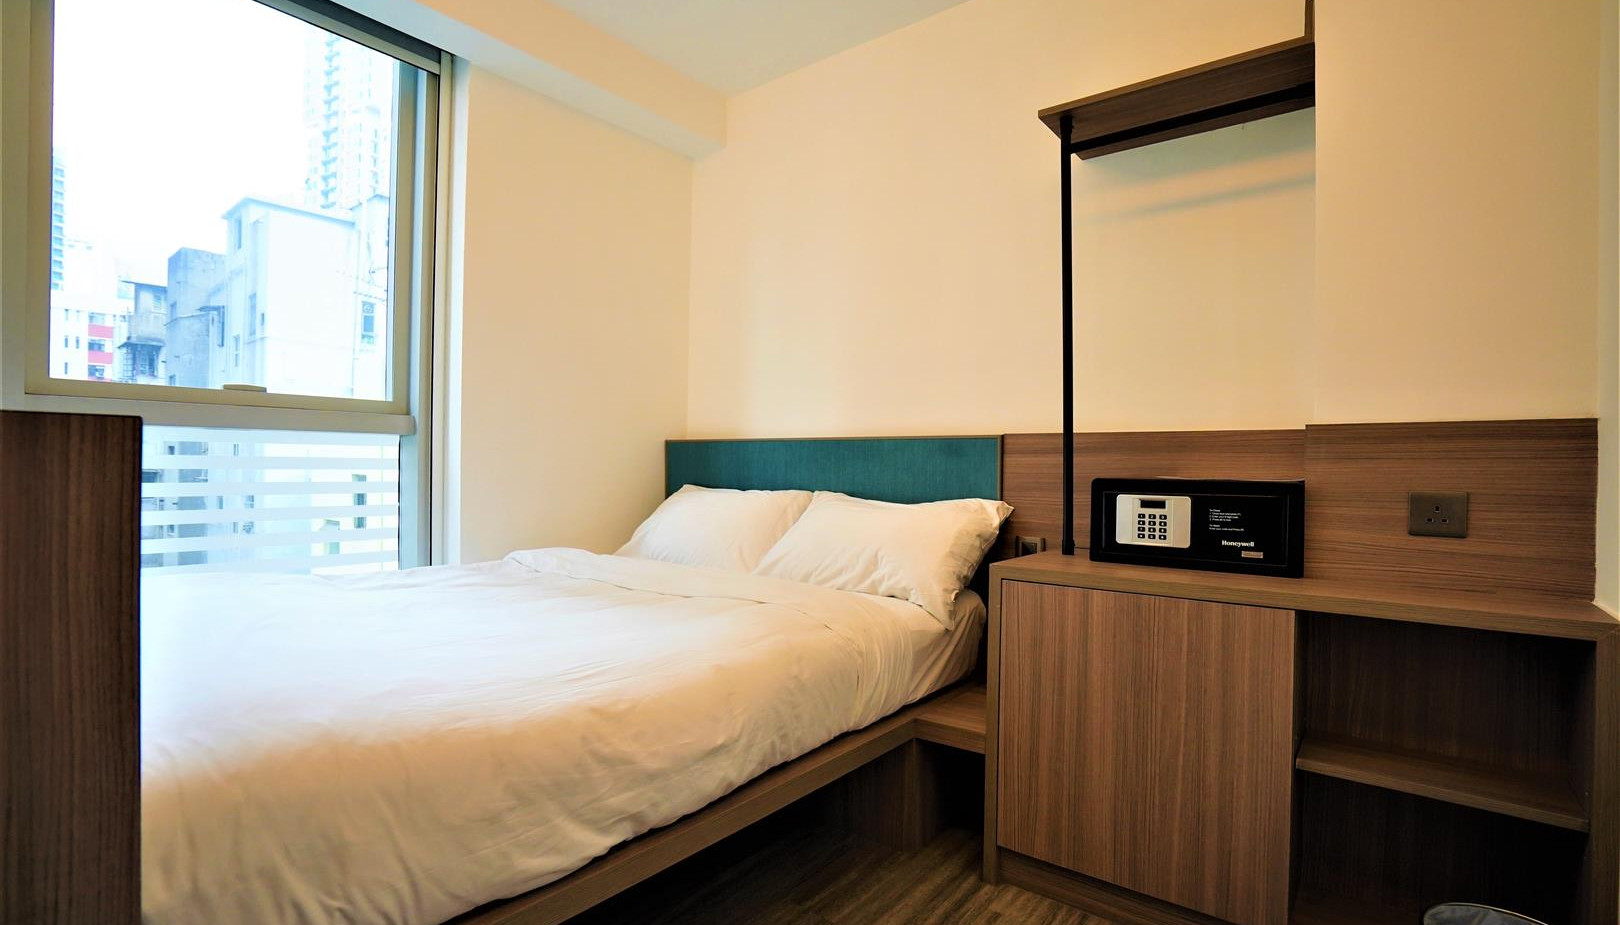 Double Room (Large).JPG